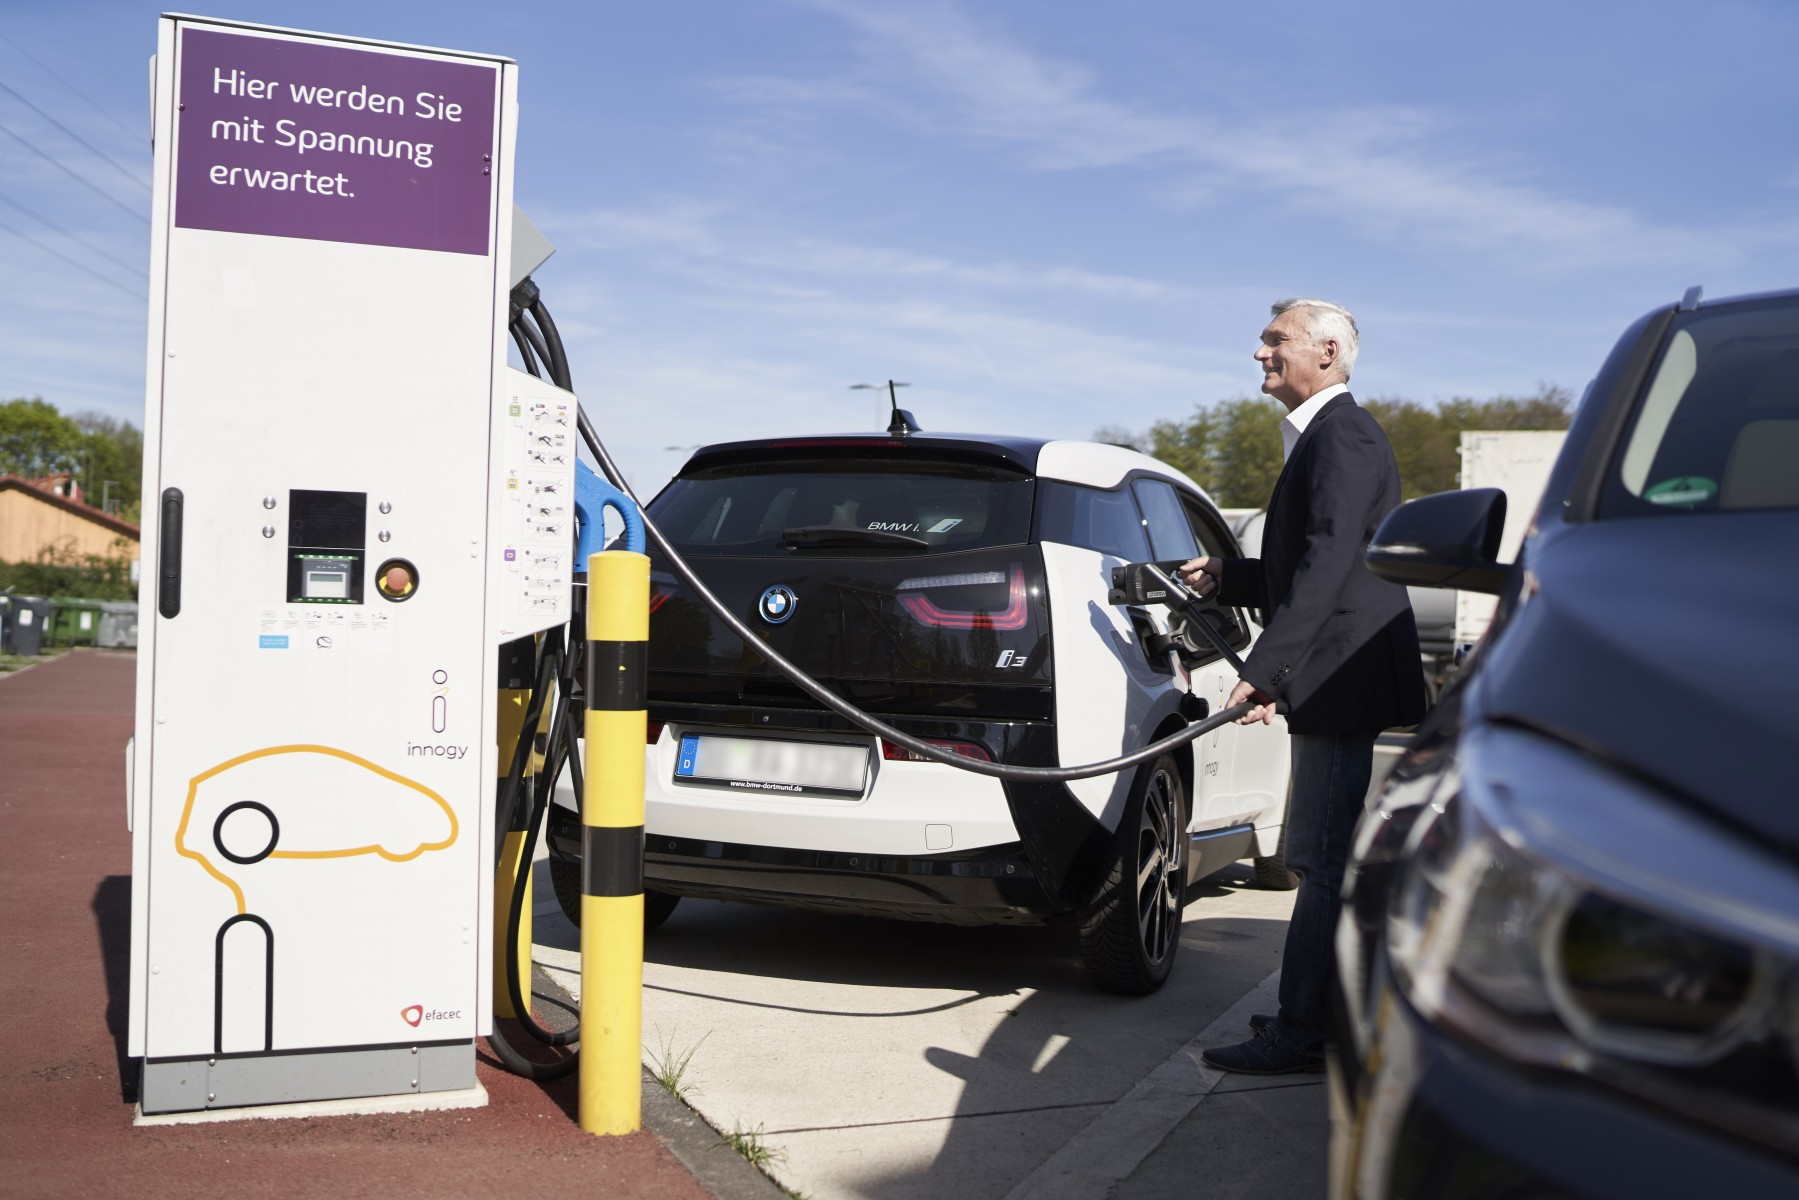 innogy fast charging station in Germany